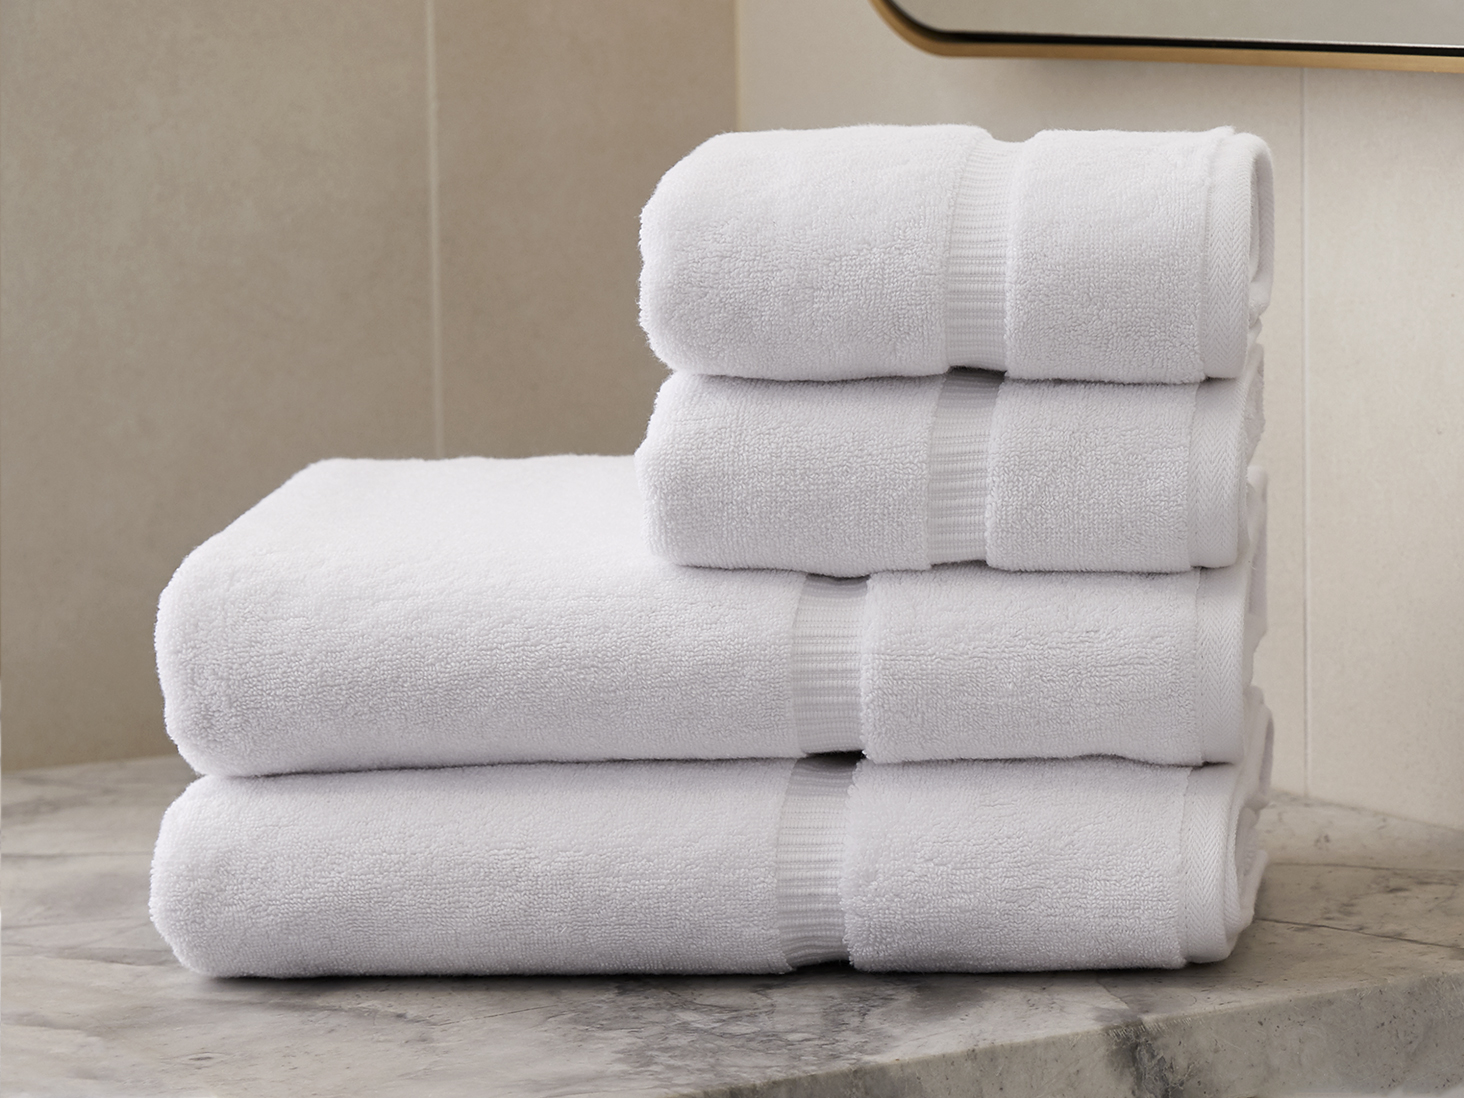 Collection Components - Bath Sheet35